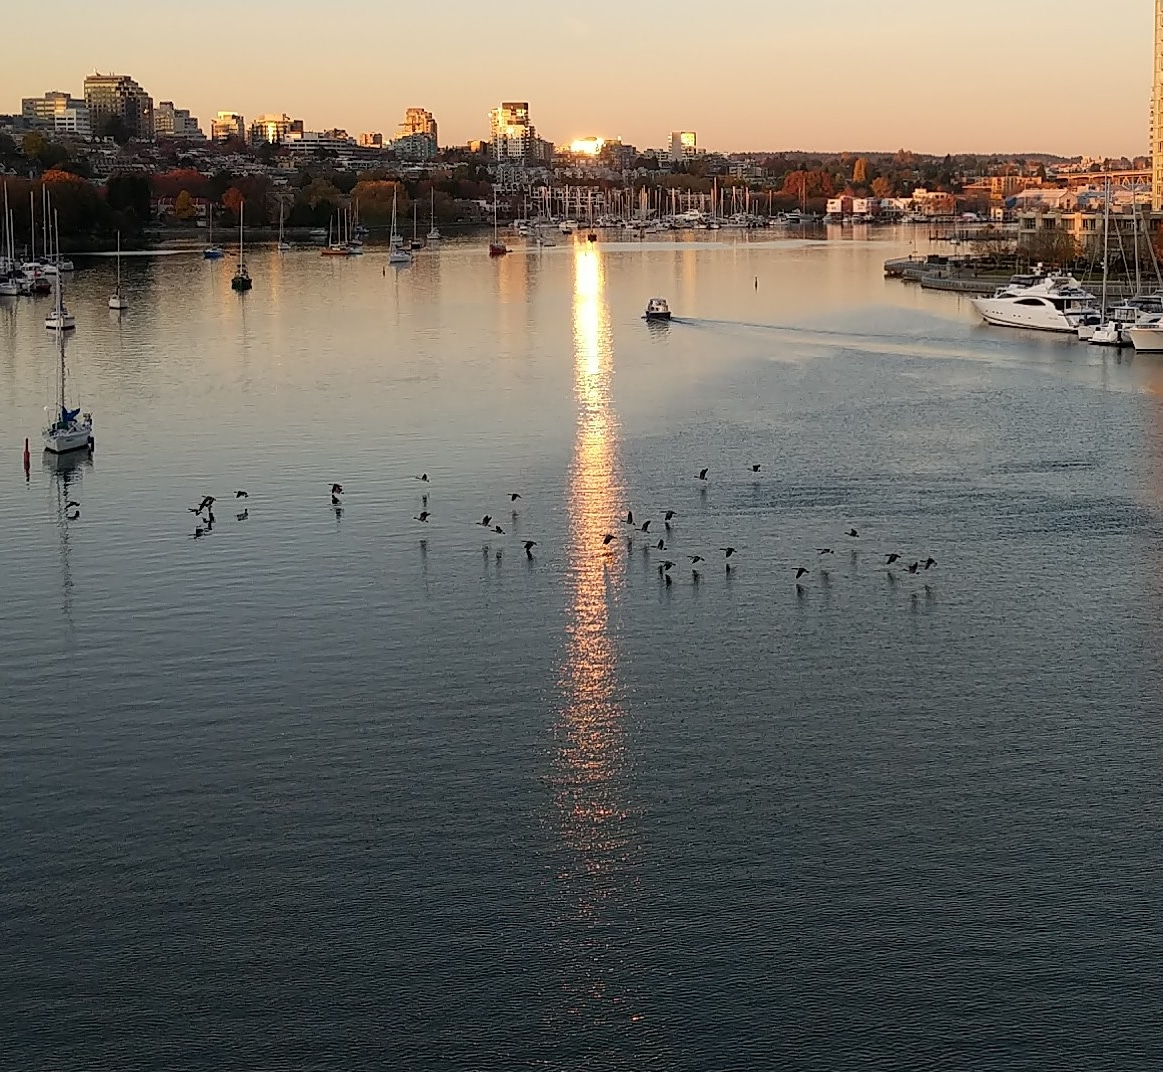 Geese flying low over False Creek